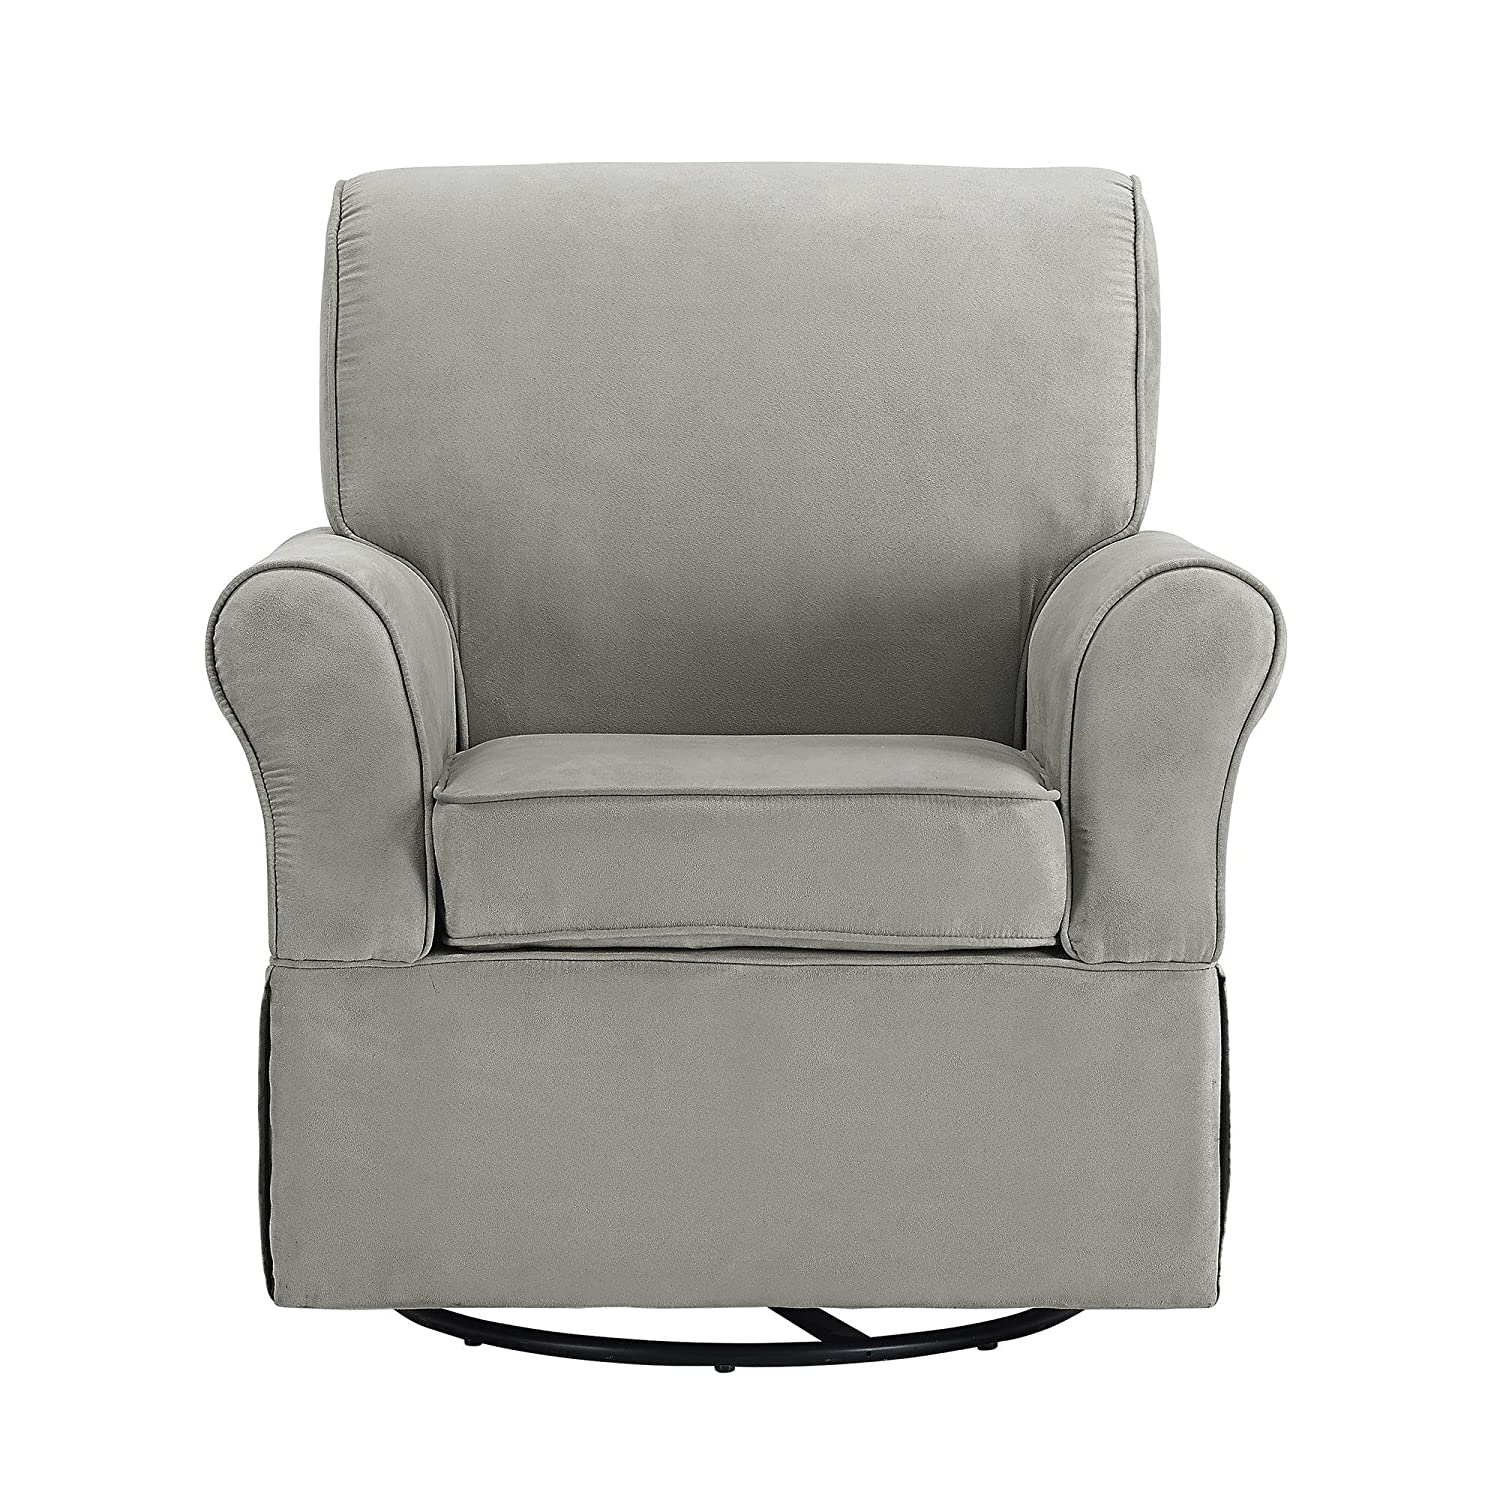 Amazon.com: Baby Relax The Kelcie Nursery Swivel Glider Chair And Ottoman  Set, Grey: Baby